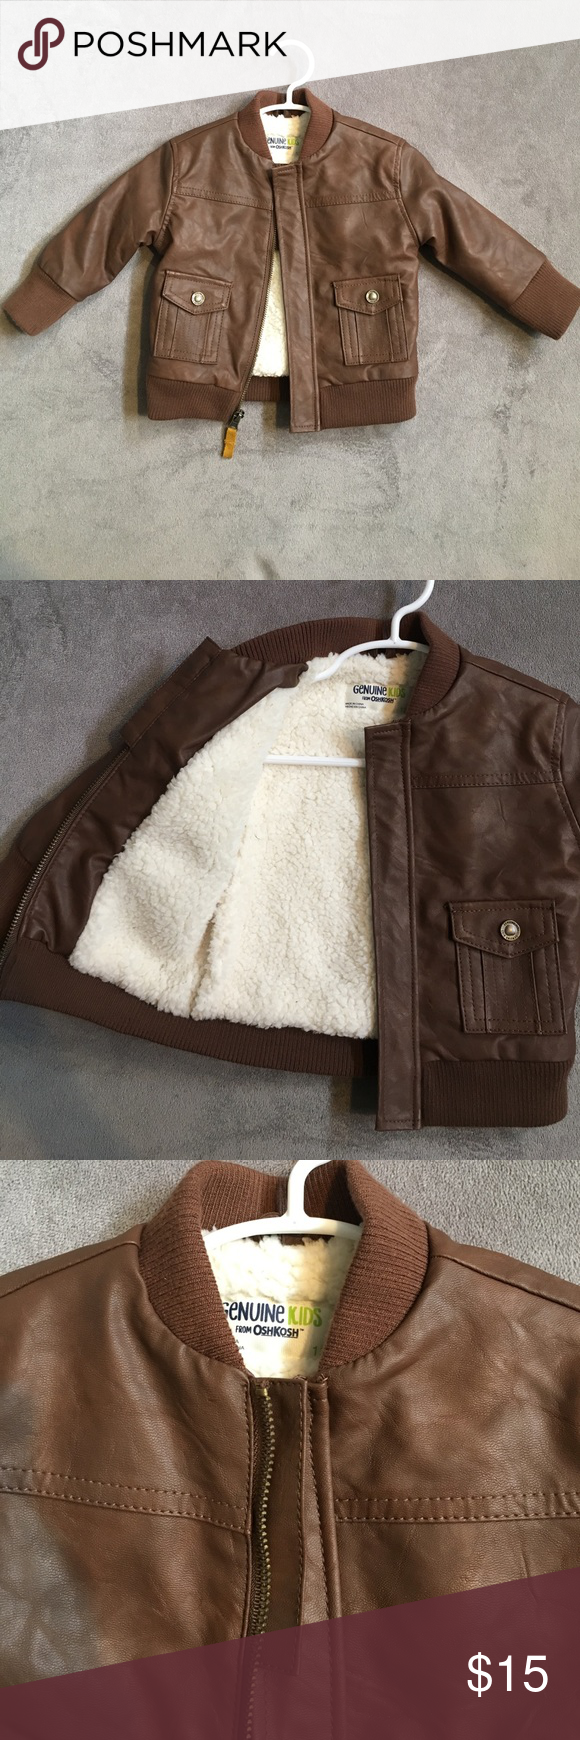 Baby boy's bomber jacket NEVER WORN! purchased for a trip up north but it was surprisingly warm out. Brown bomber jacket with fleece lining. Perfect for everyday use. Excellent condition Jackets & Coats